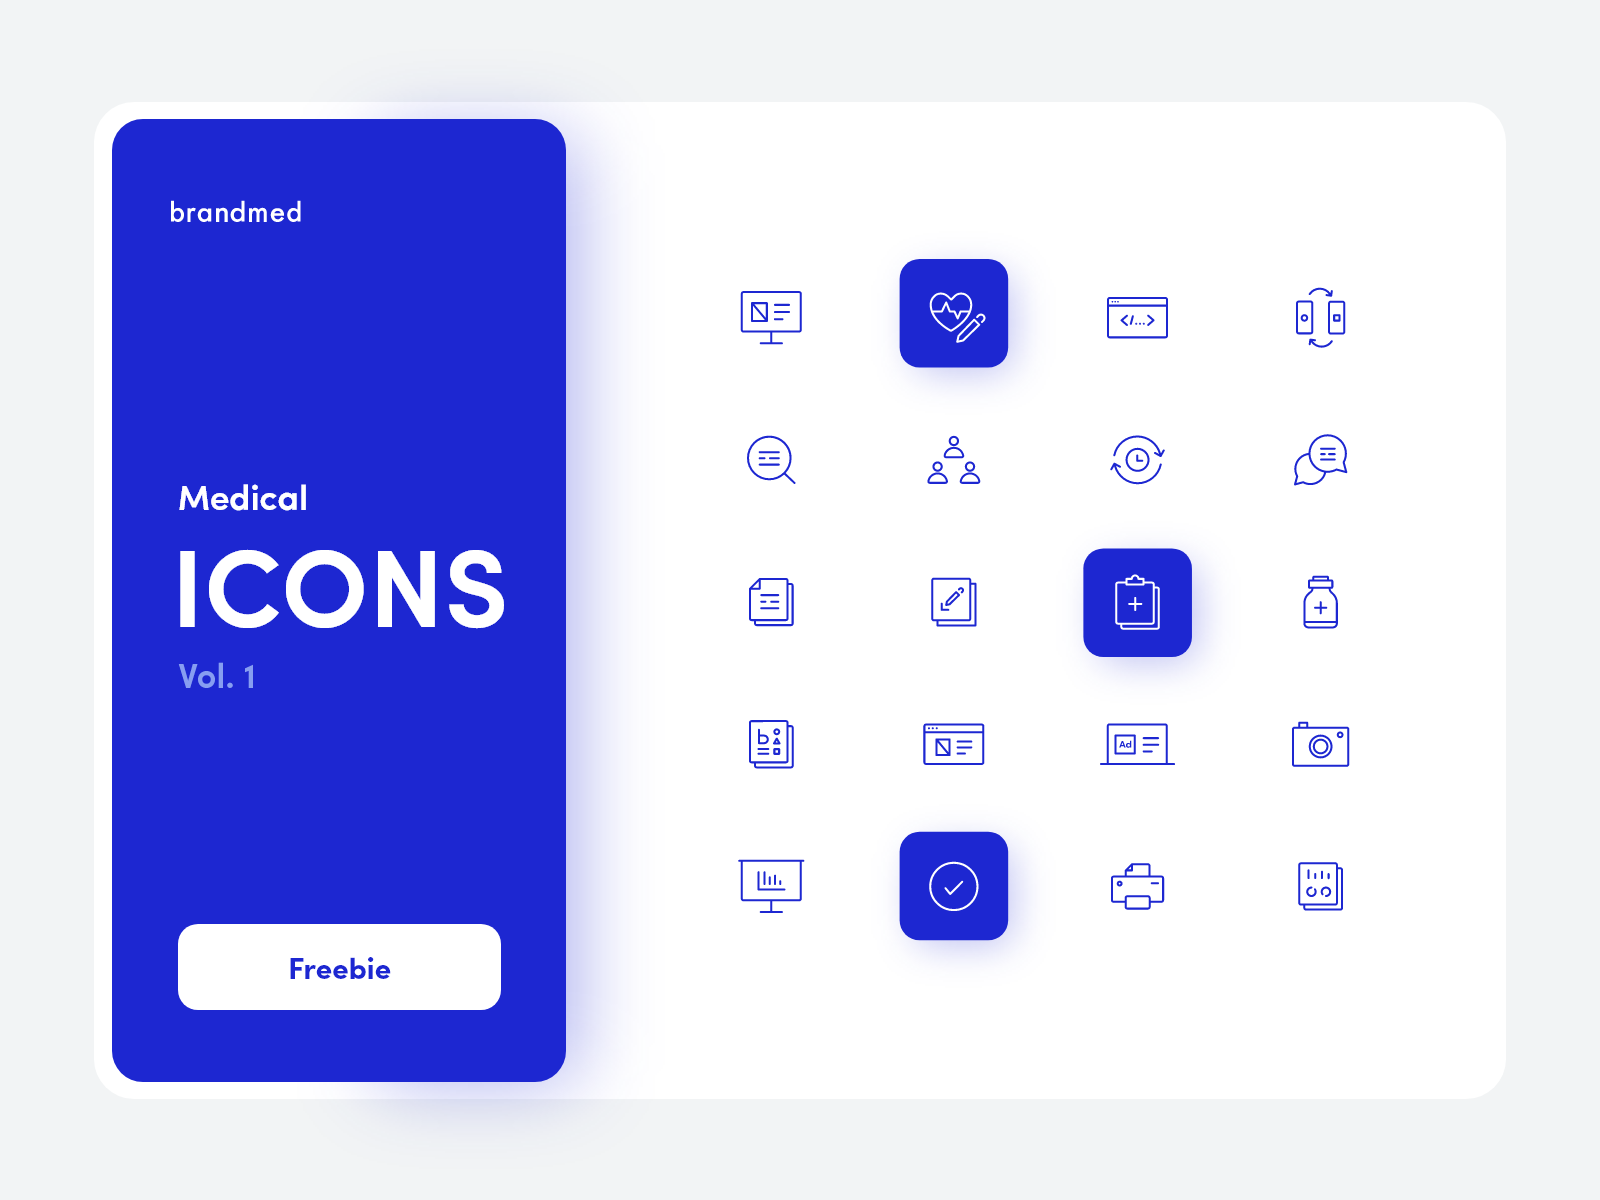 Brandmed Medical Icons vol.1